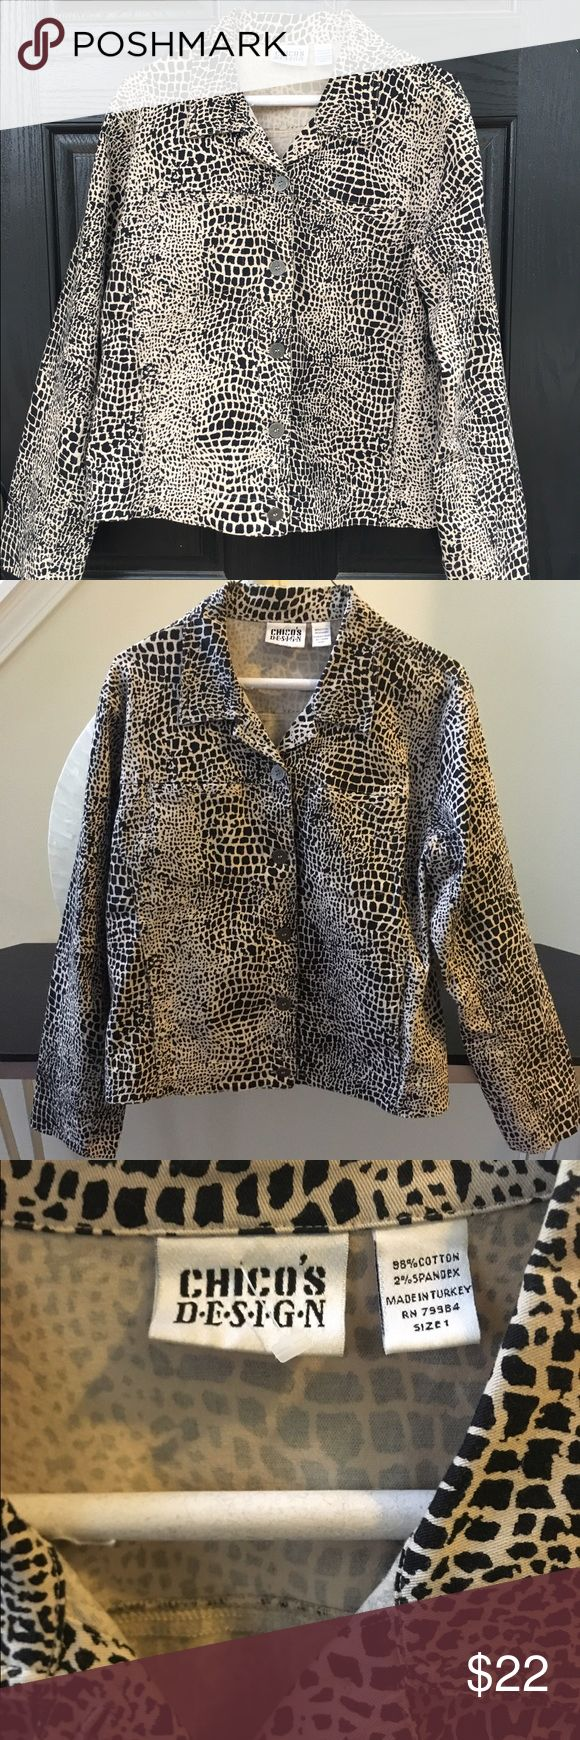 Chico's leopard print shirt jacket In excellent condition! Like new!  Leopard print button up jacket or shirt. Soft, but sturdy. 98% cotton. Chico's size 1 which is equivalent to a medium or 8/10. Thanks for looking.💕 Chico's Jackets & Coats